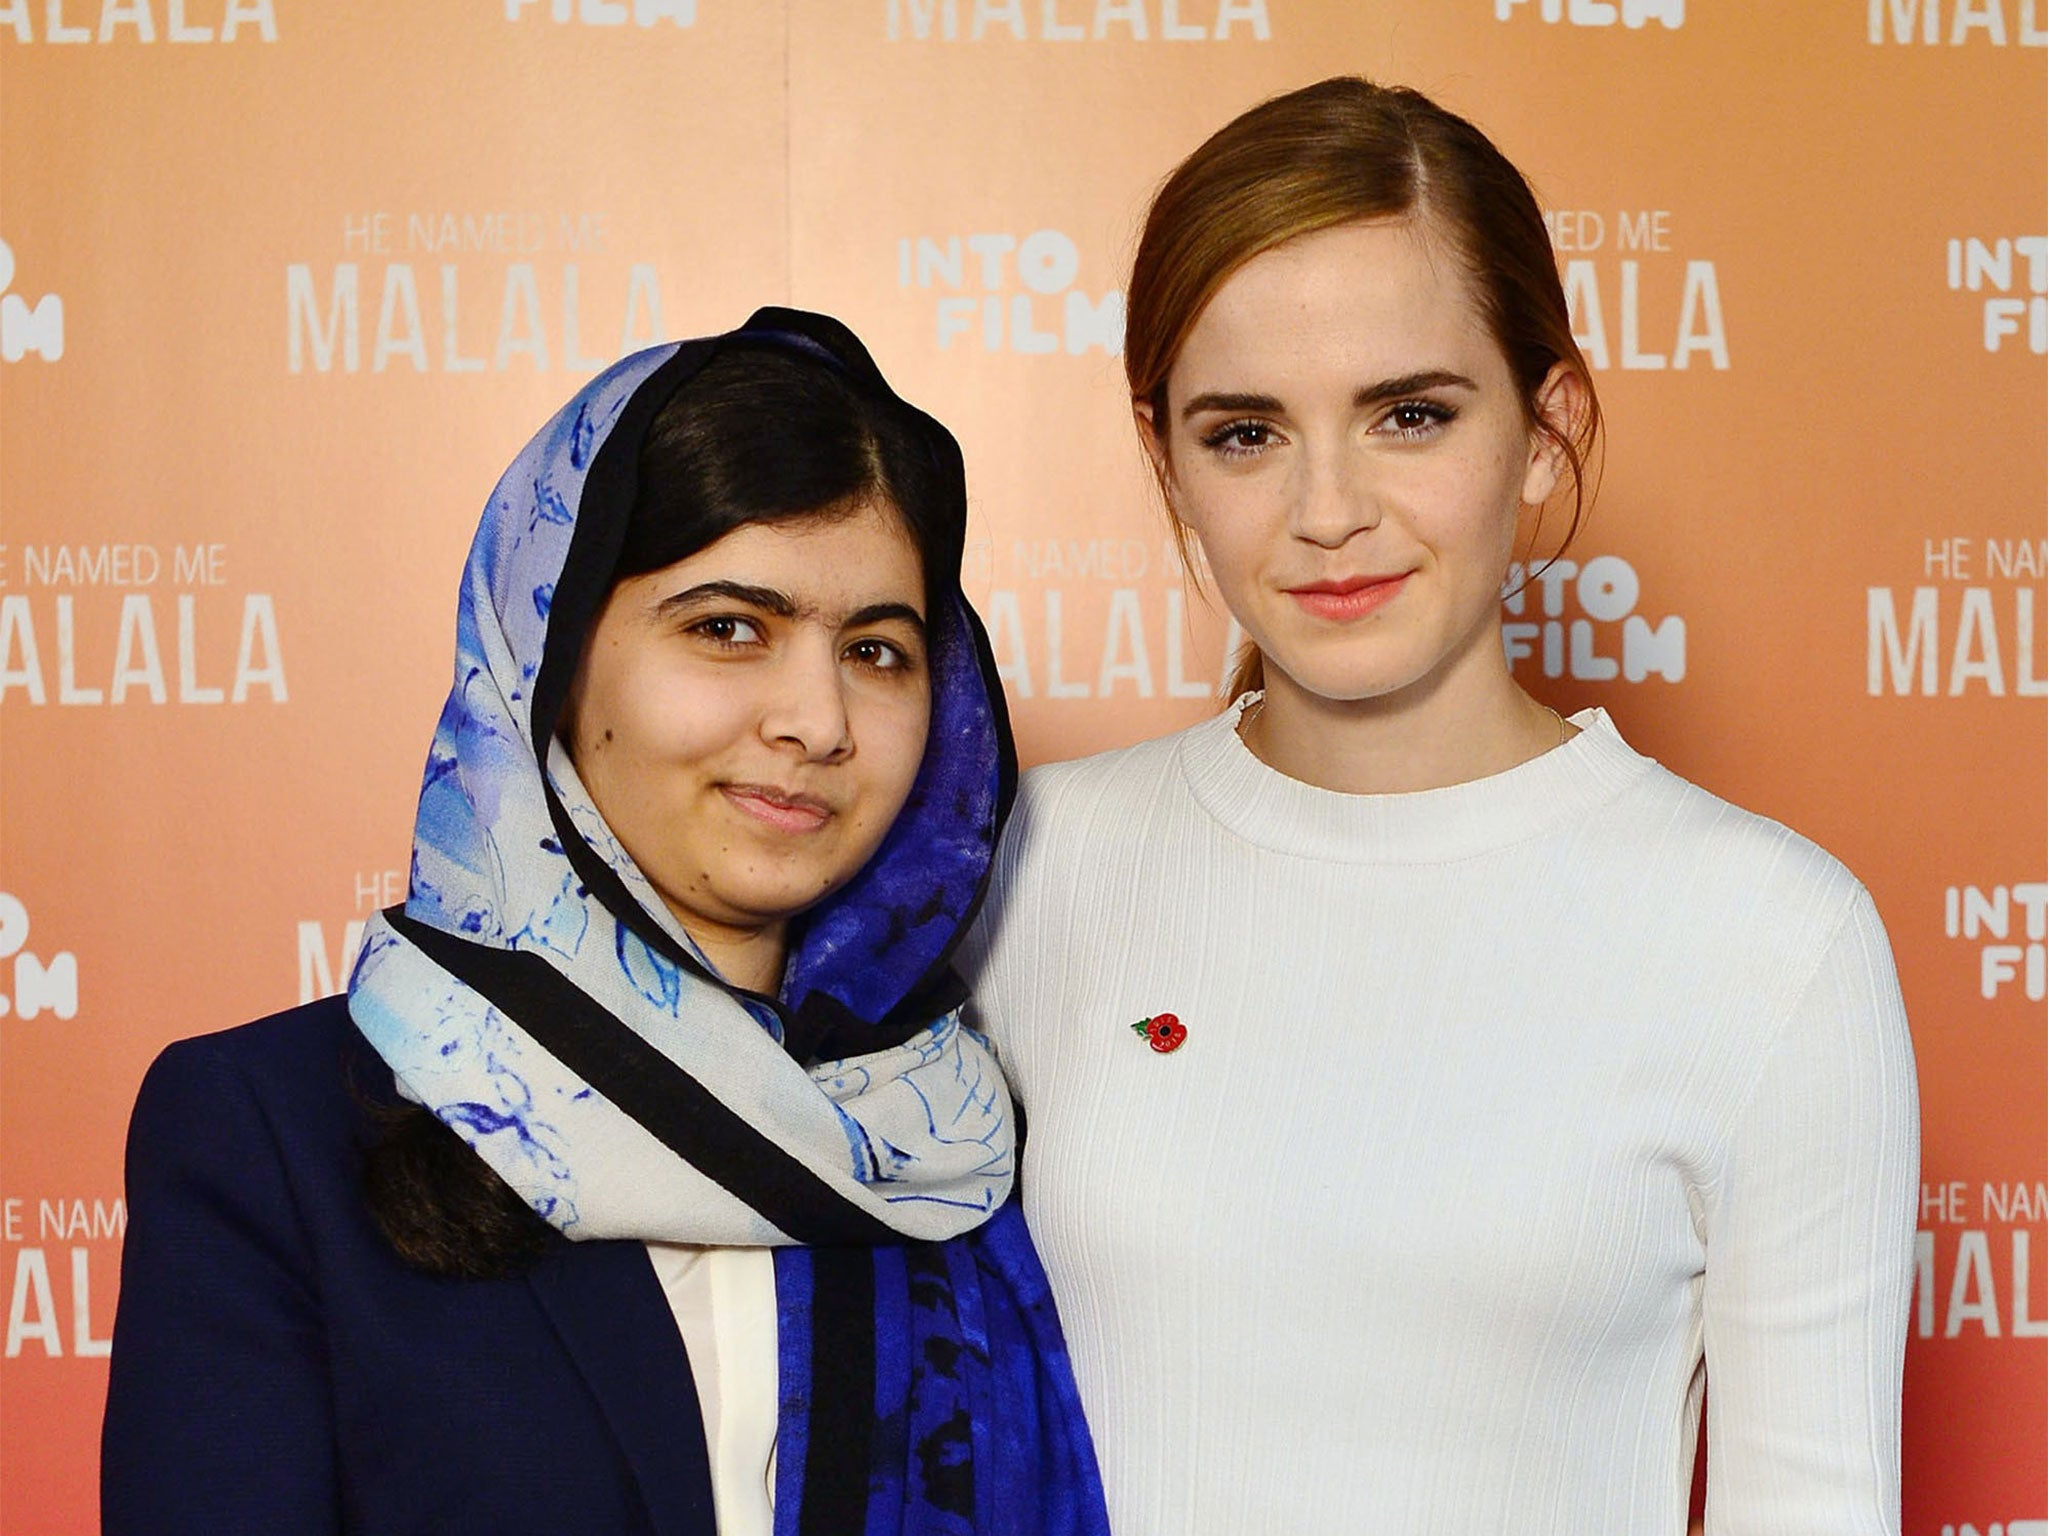 Malala Yousafzai inspired by Emma Watson to call herself a ...